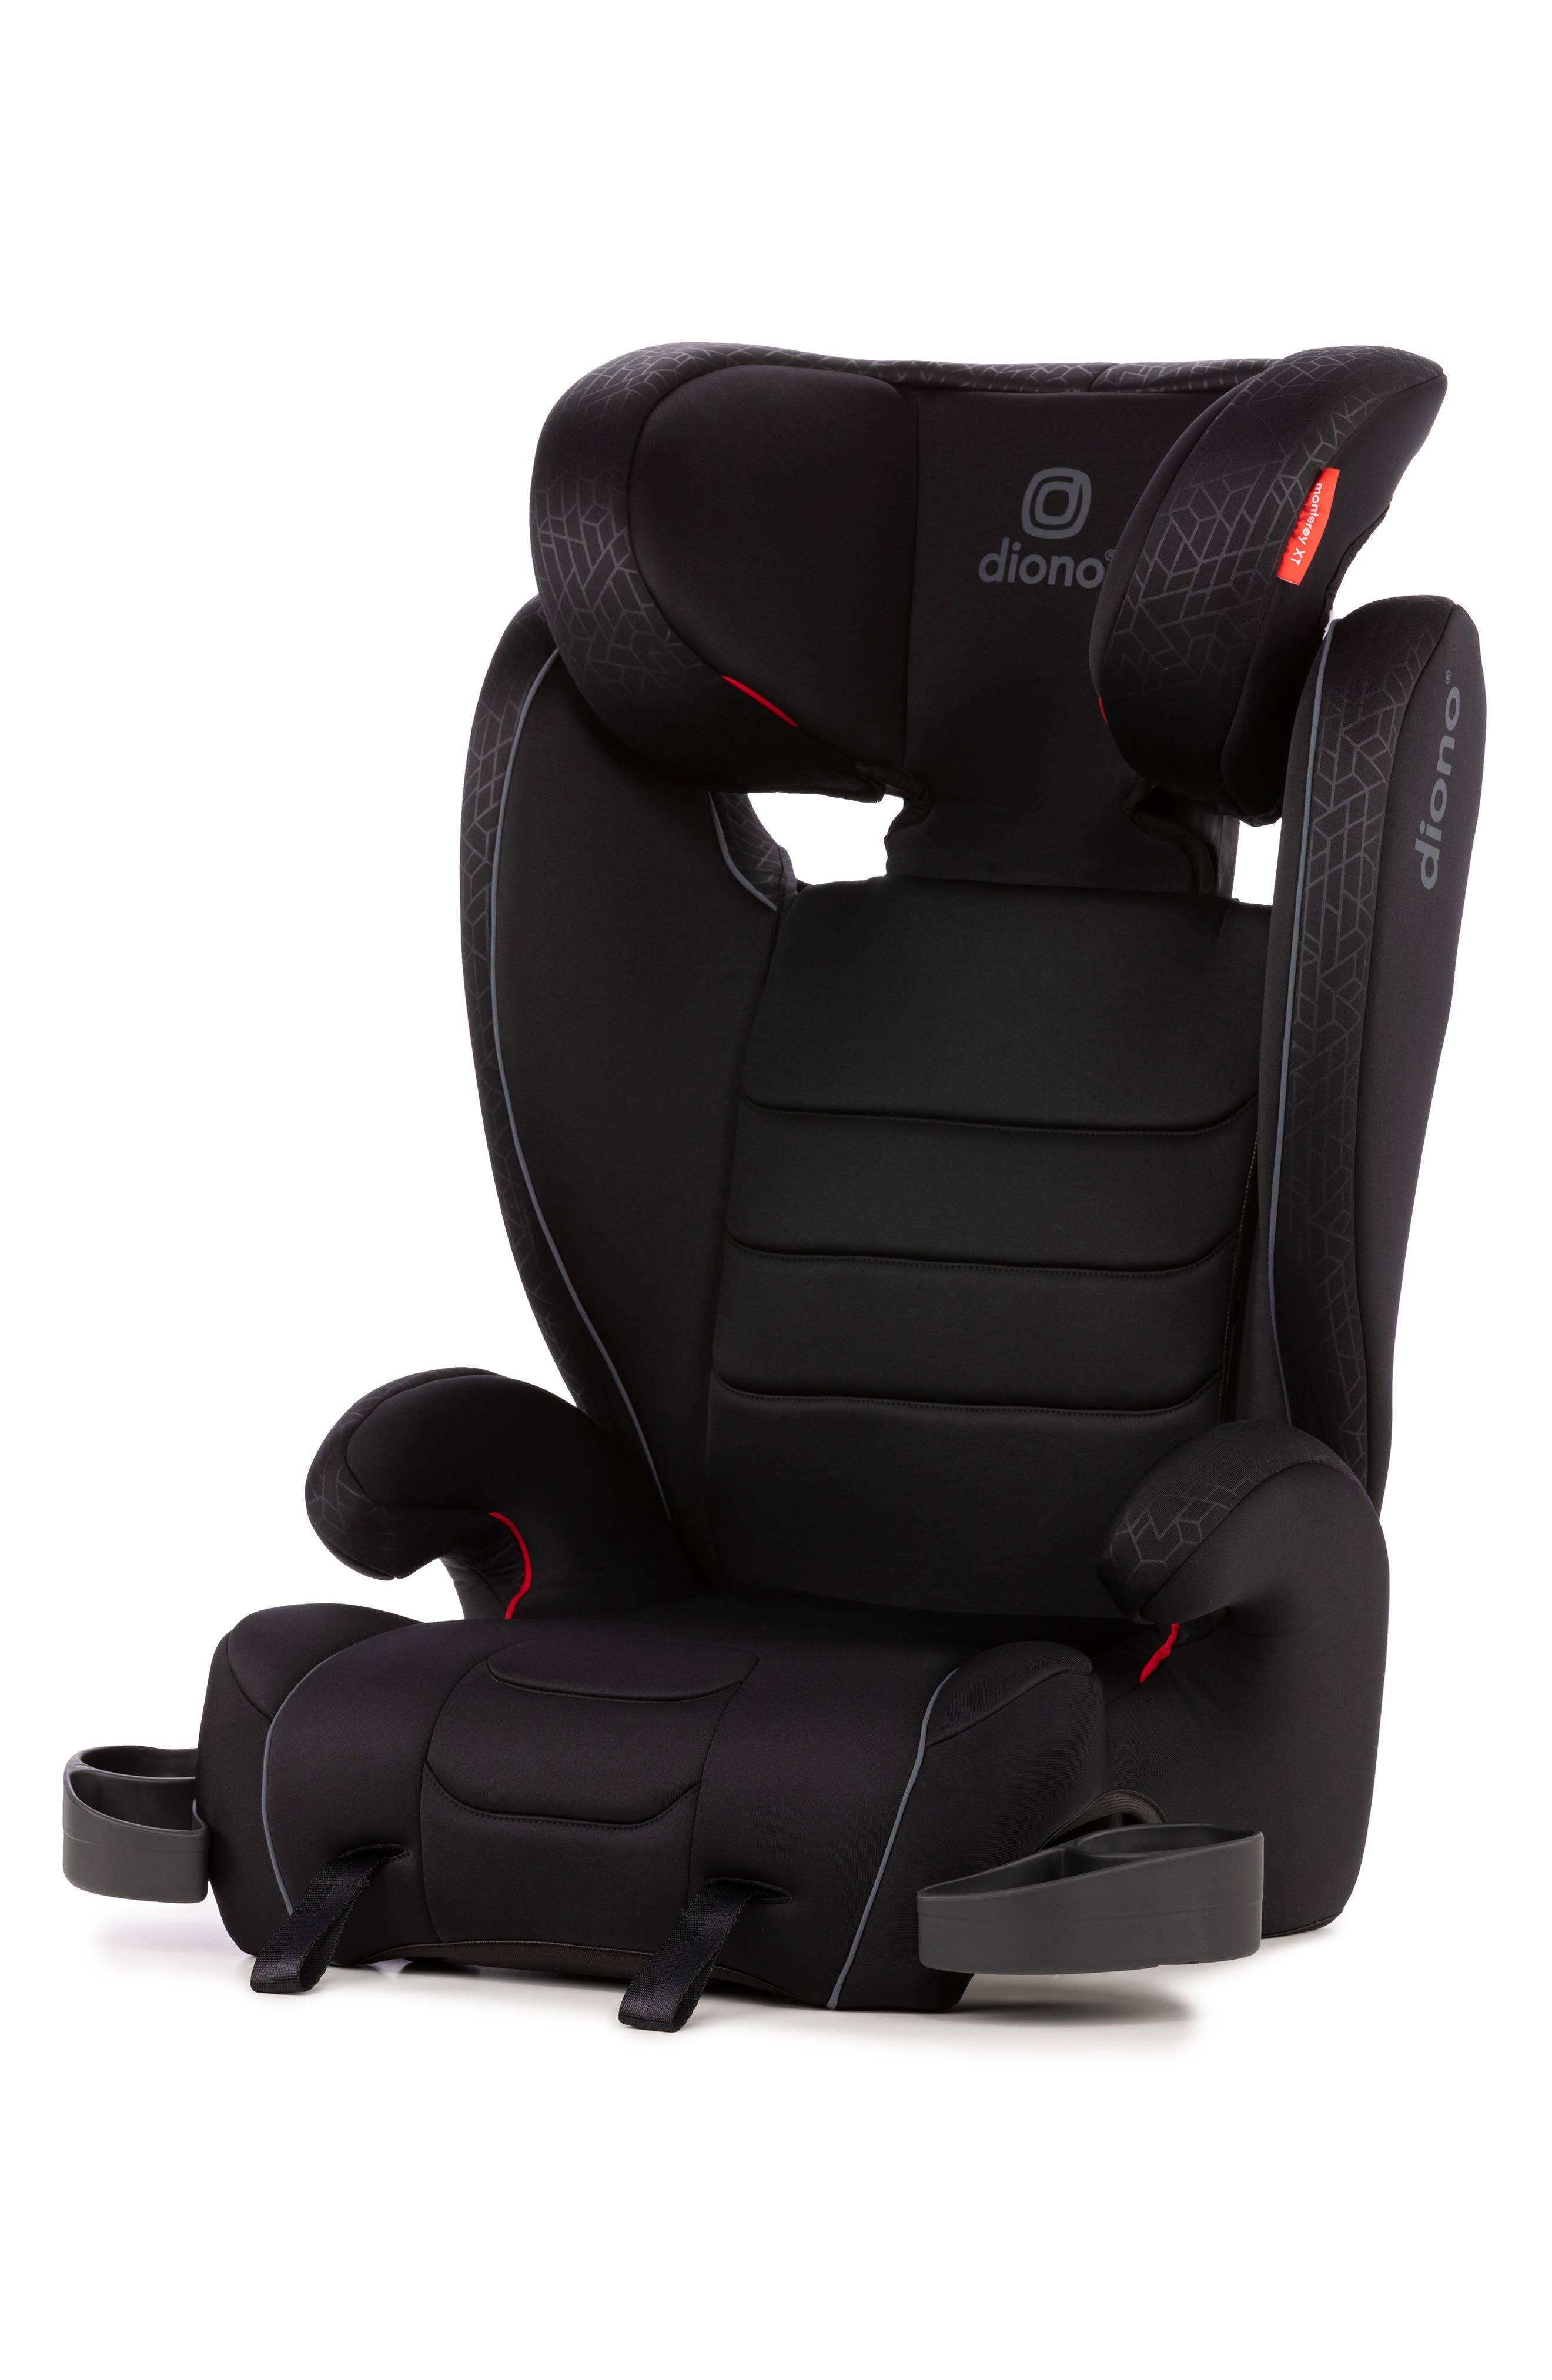 Diono Infant Diono Monterey Xt Expandable Highback Booster Car Seat, Size One Size - Black